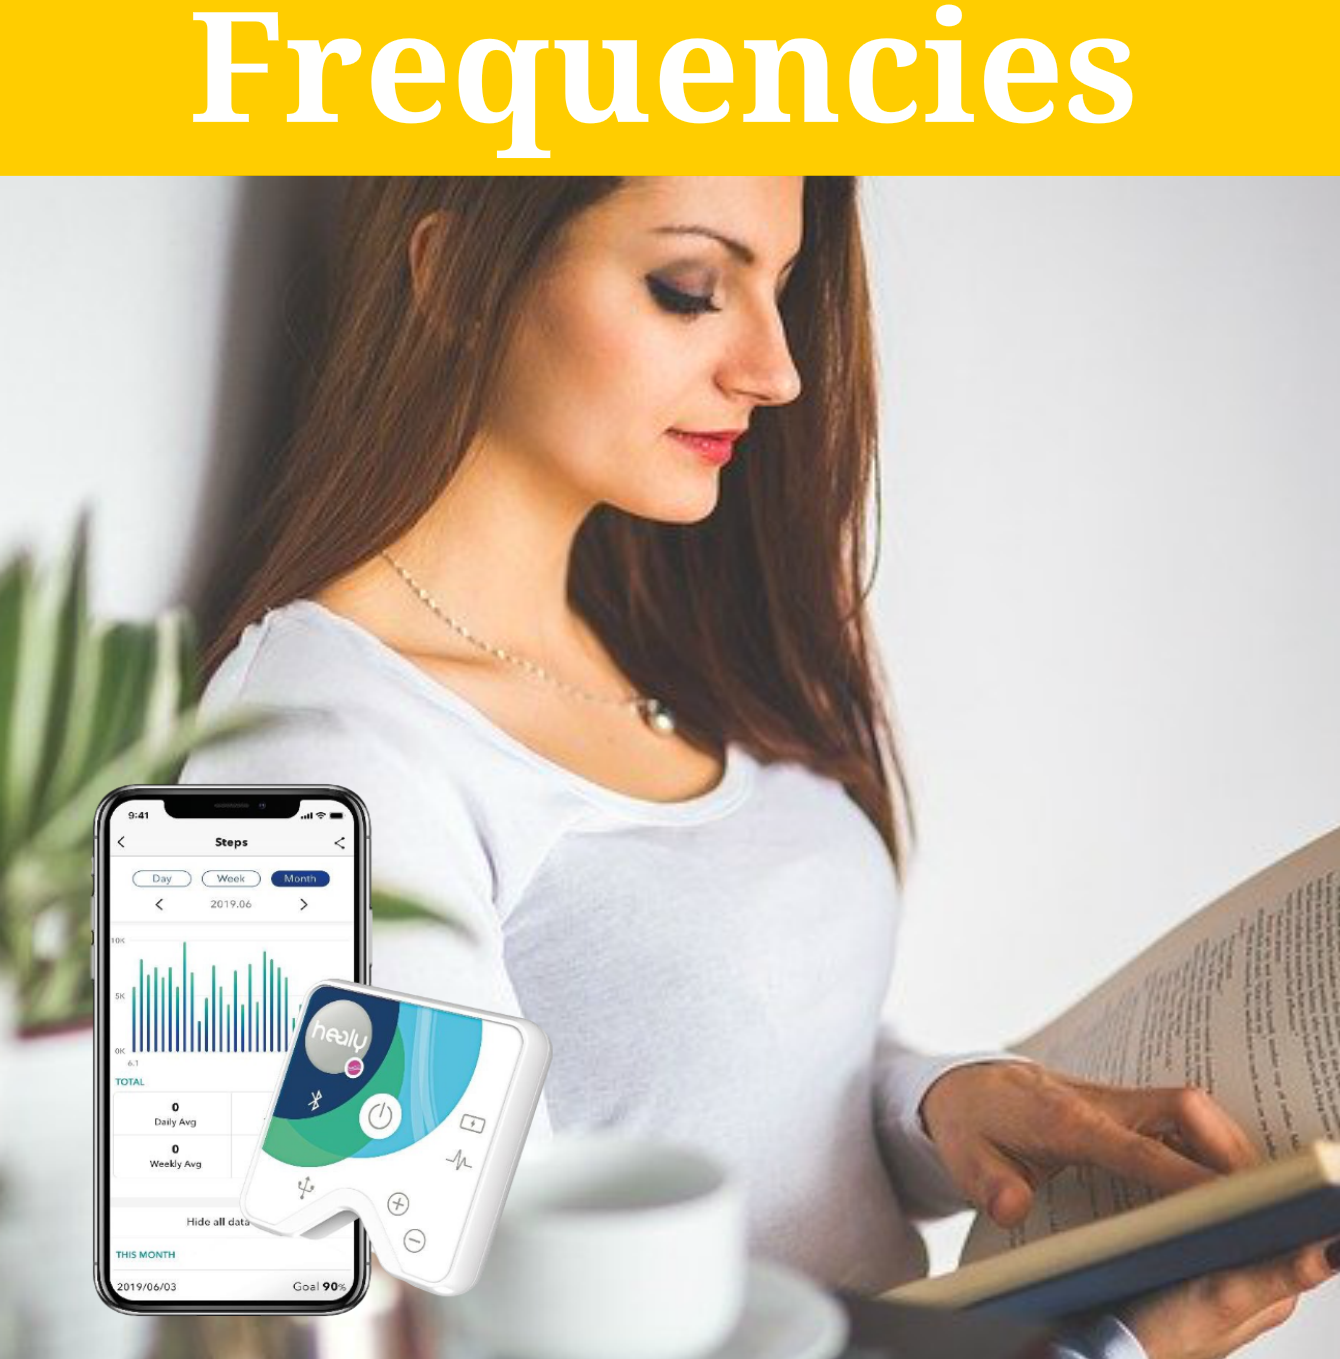 1583479099_1583479099_Frequencies_2